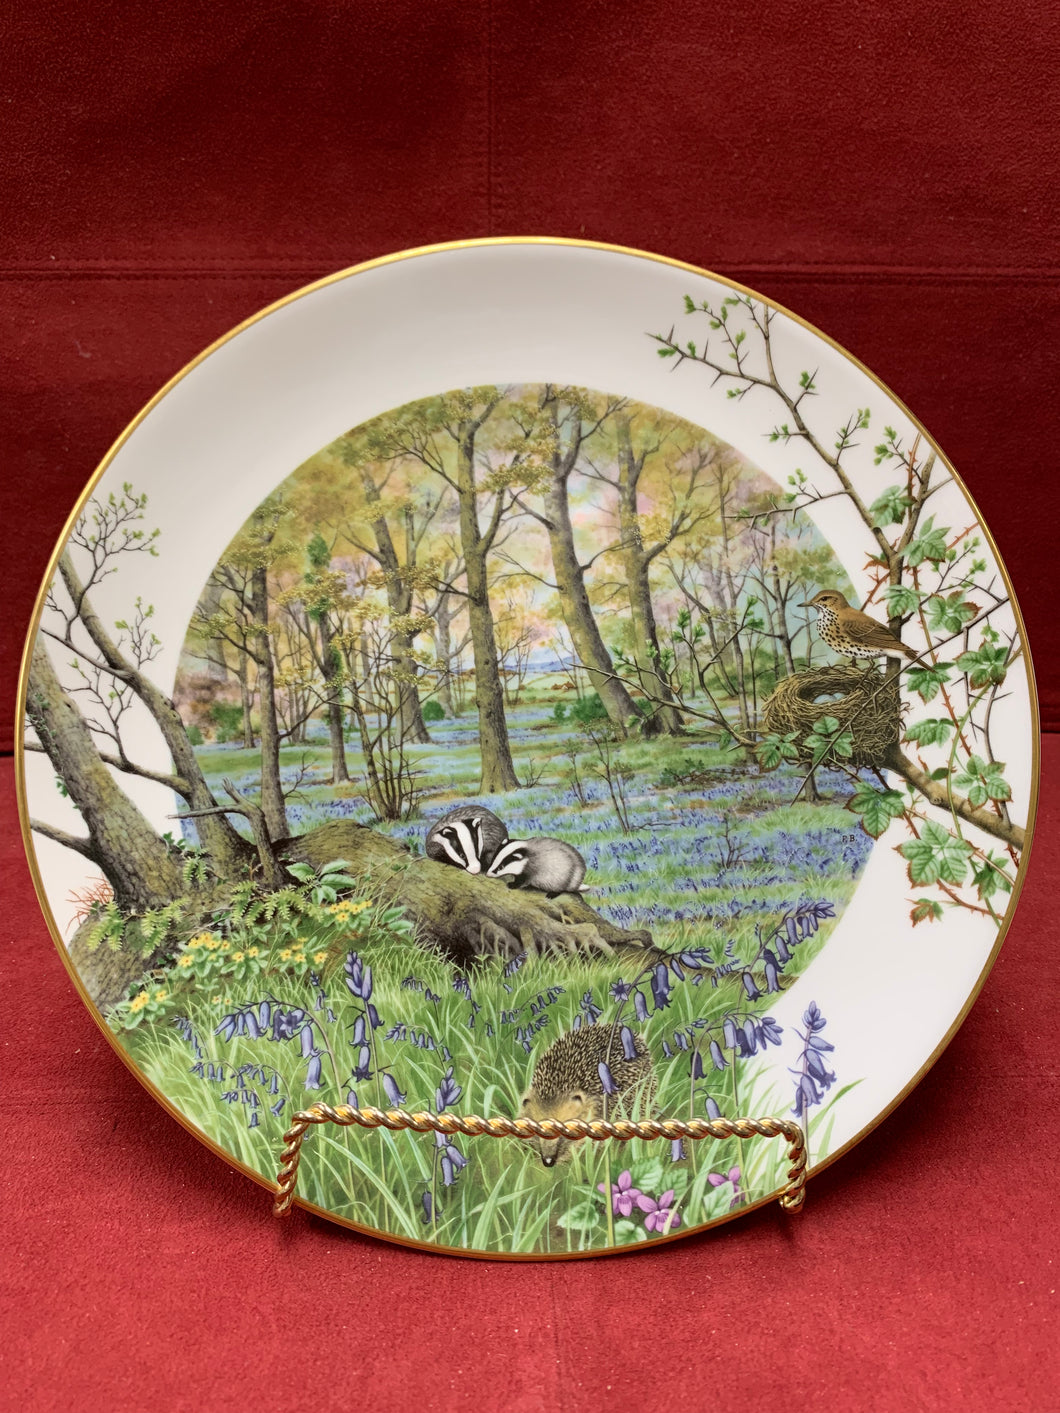 Collector Plate. The Woodlands in April - by Peter Banett.  9-1/4